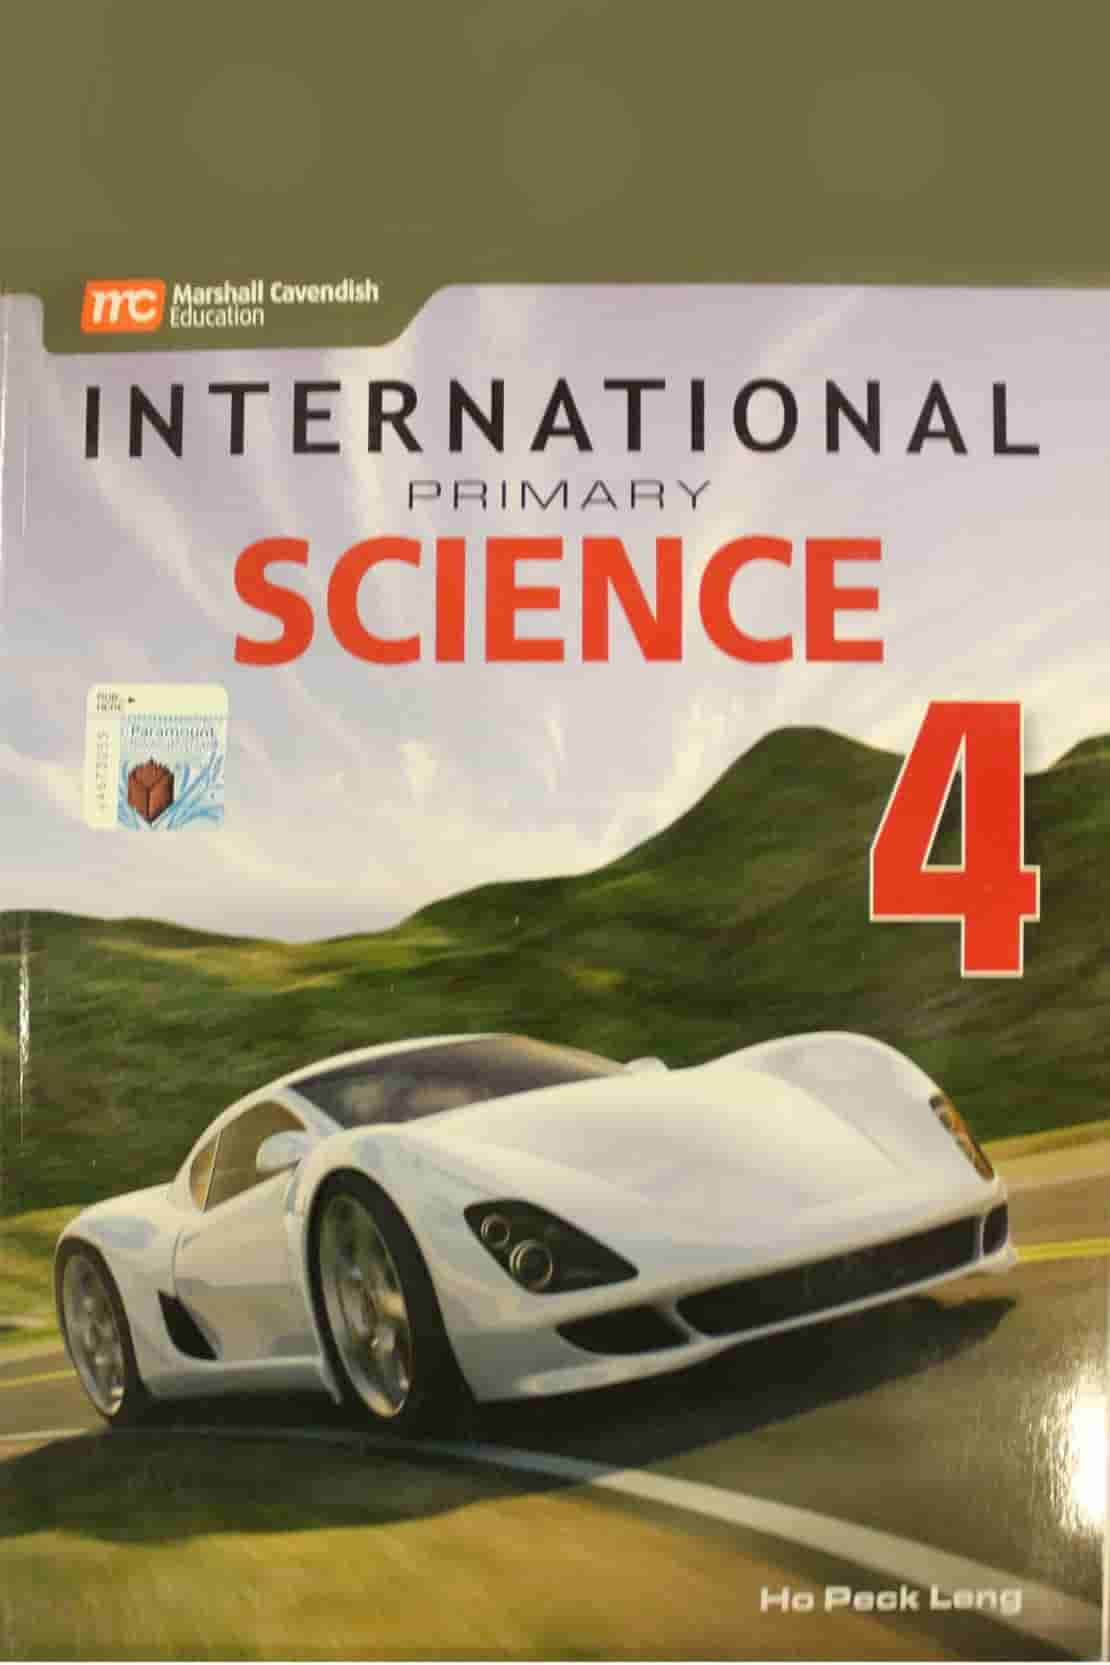 INTERNATIONAL PRIMARY SCIENCE TEXTBOOK 4